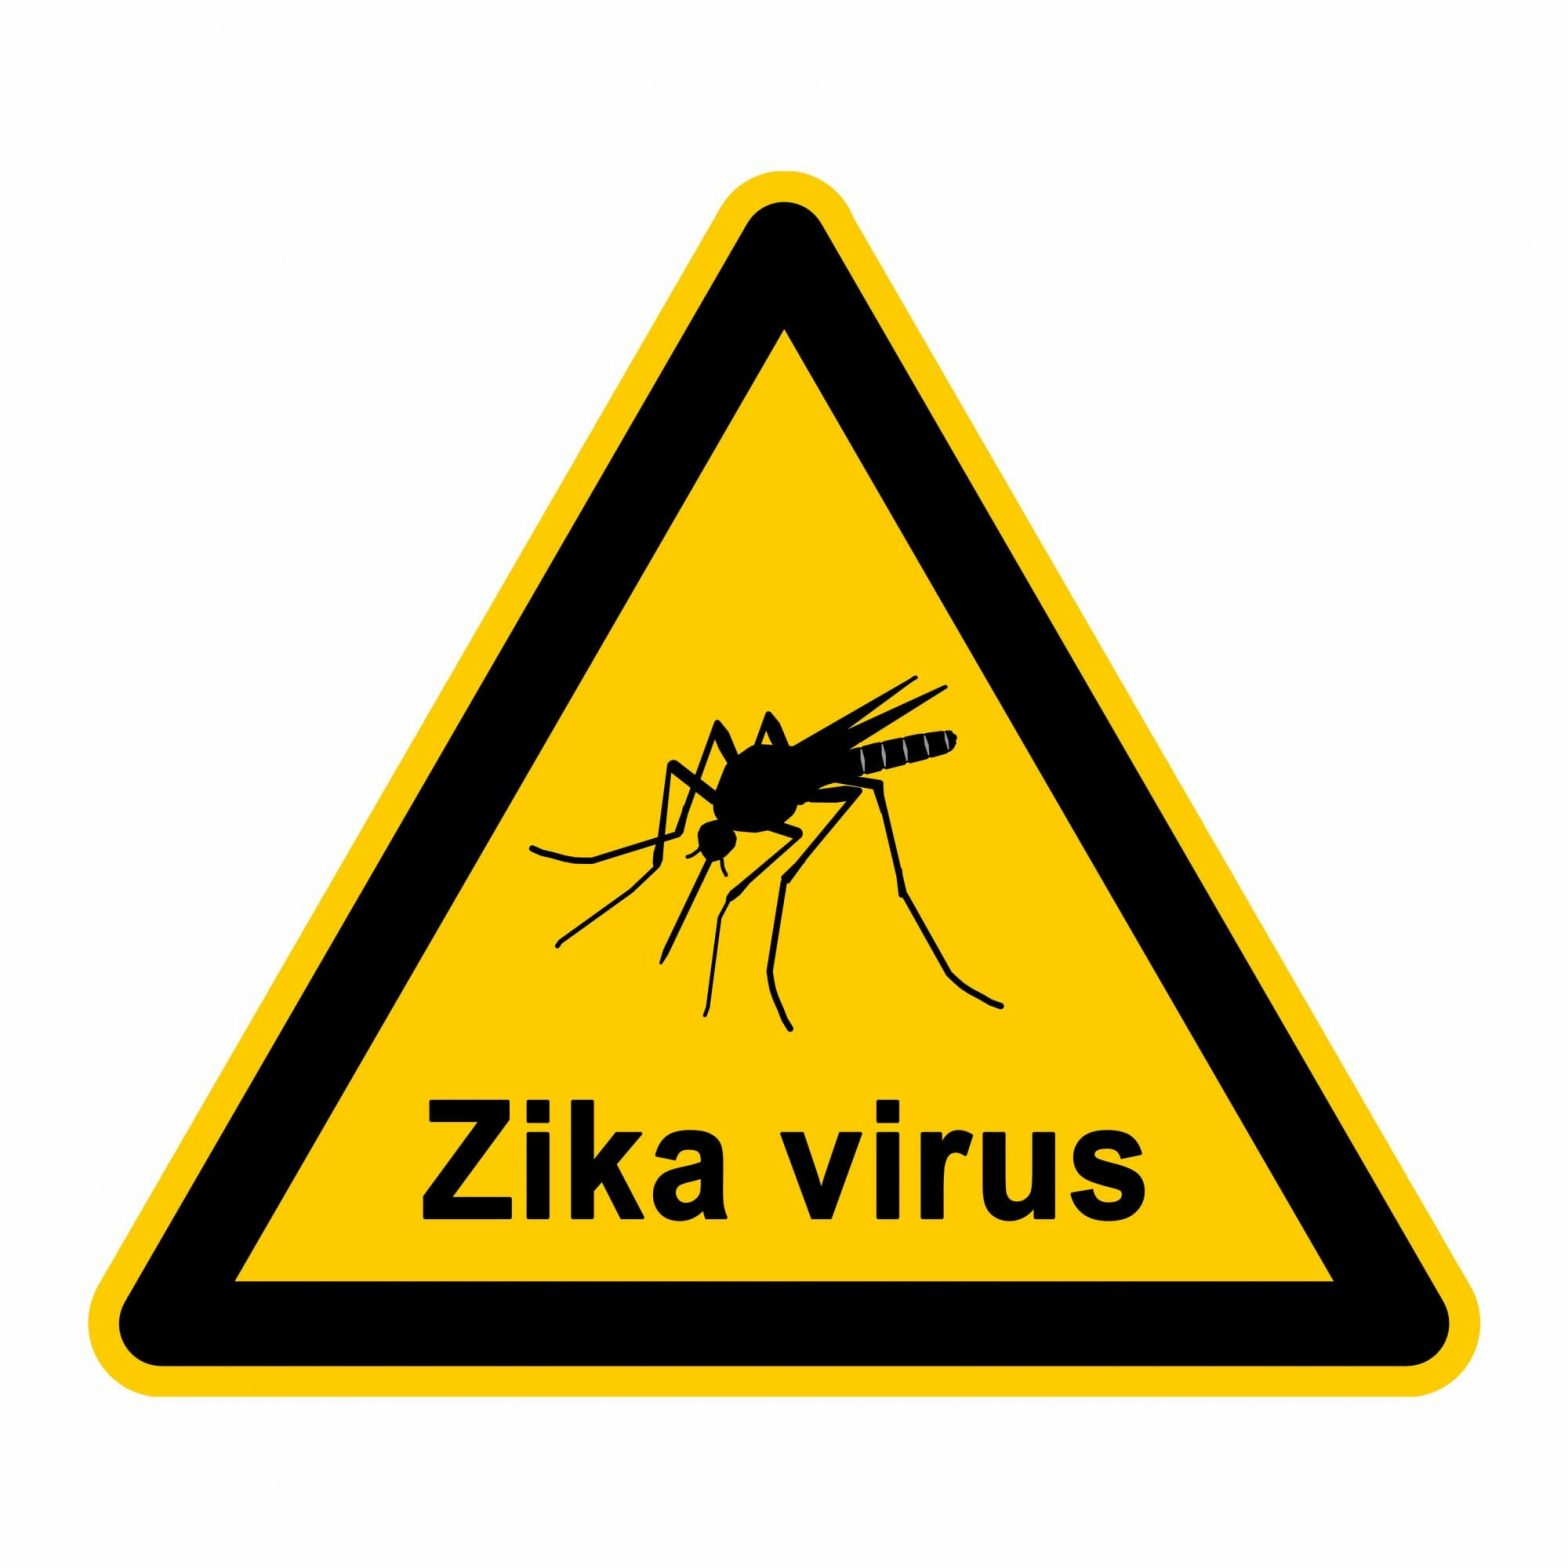 Zika Virus: Are You At Risk?